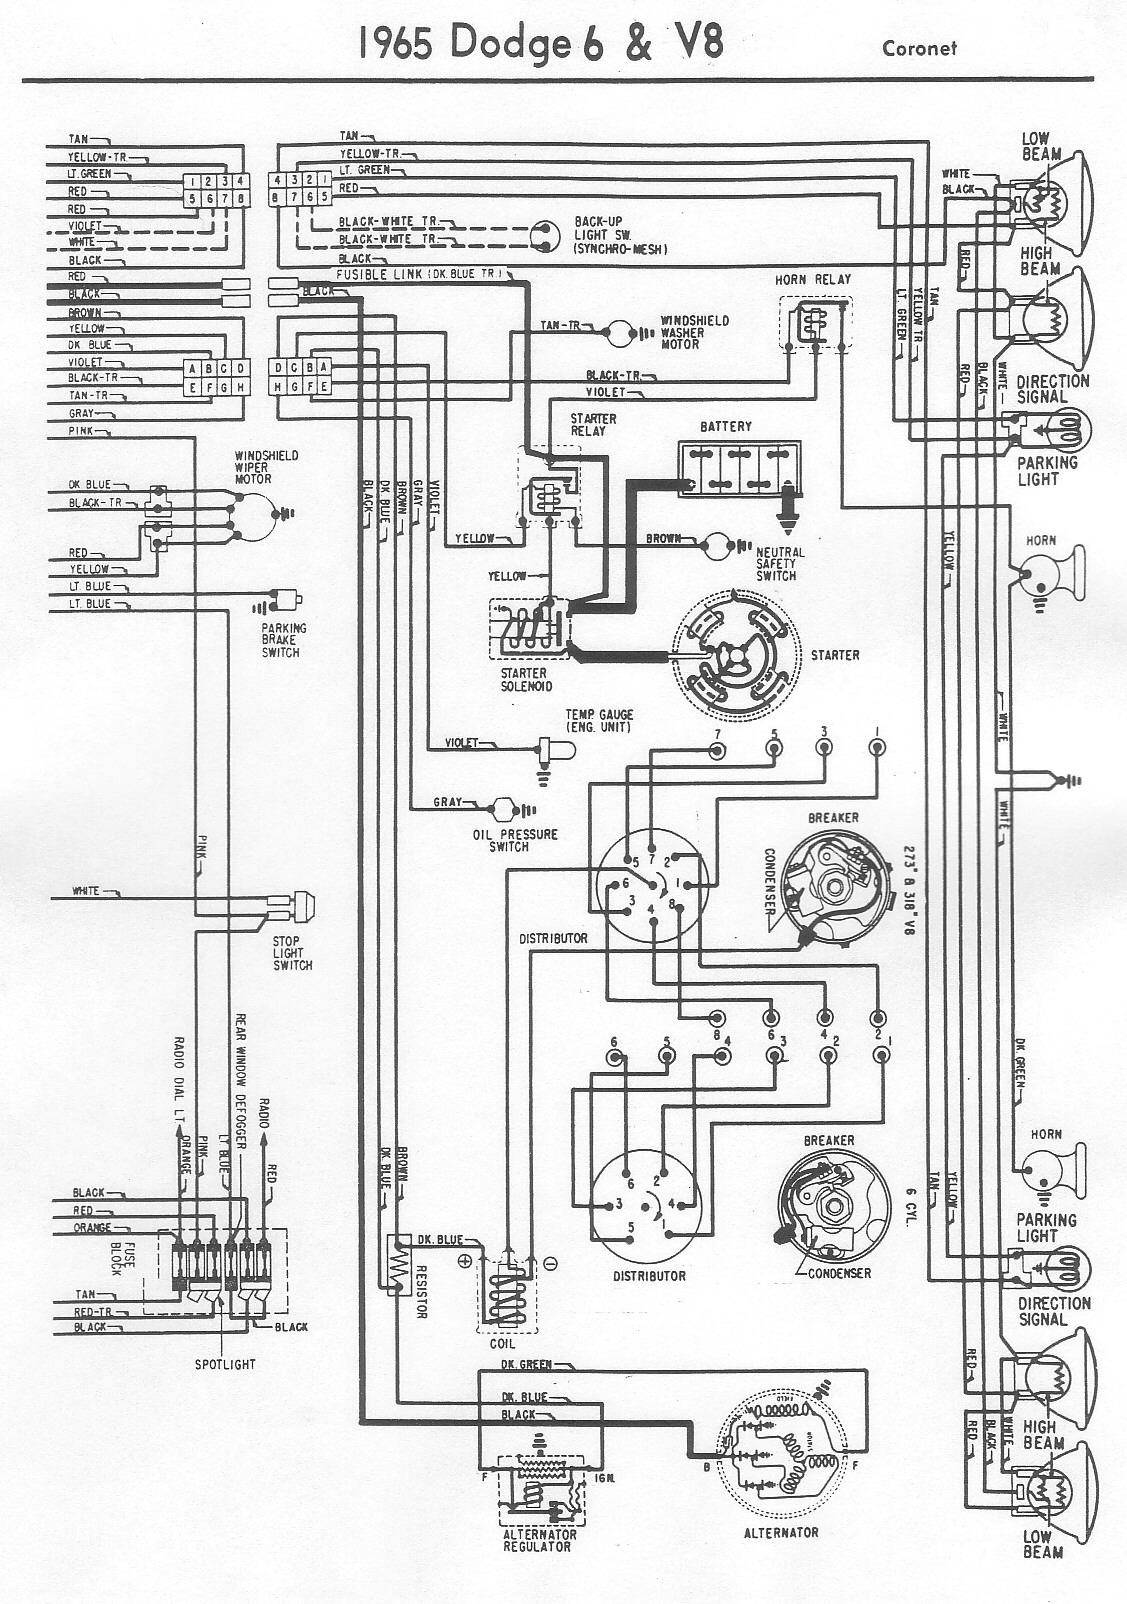 small resolution of 1965 coronet wiring harness wiring library u2022 1998 dodge truck wiring diagram 1960 dodge wiring